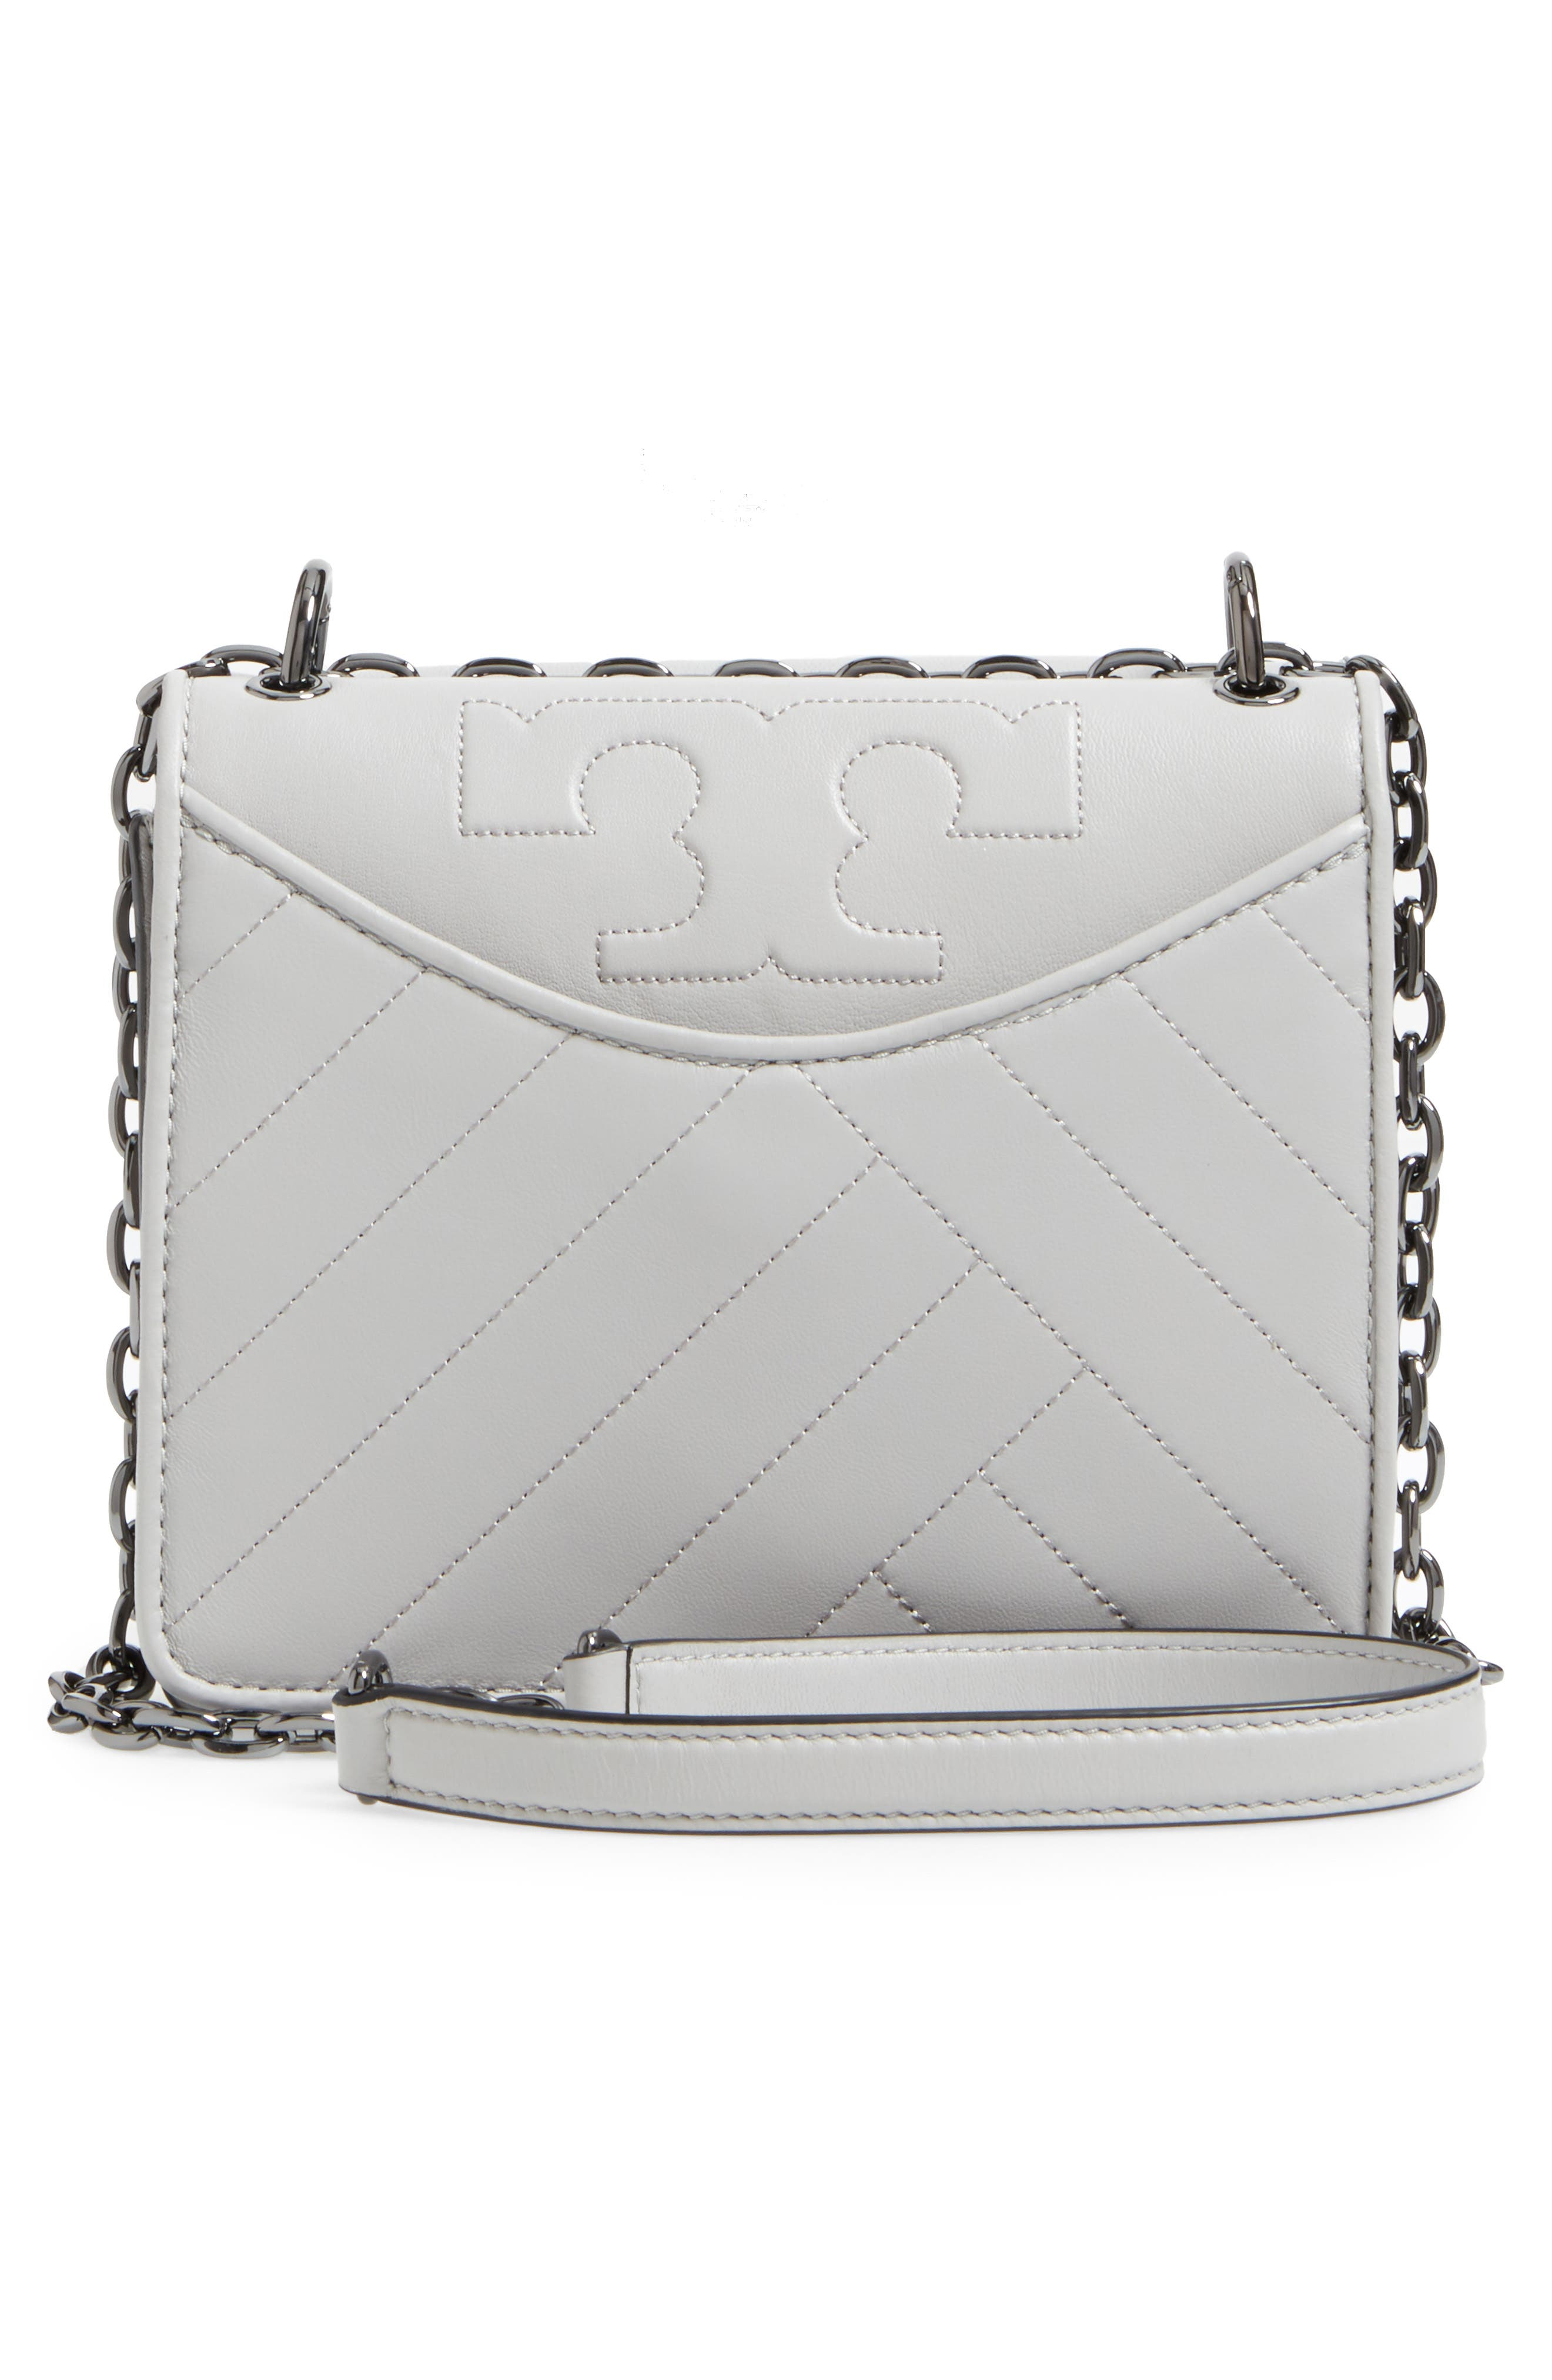 Alternate Image 3  - Tory Burch Chevron Quilted Leather Crossbody Bag